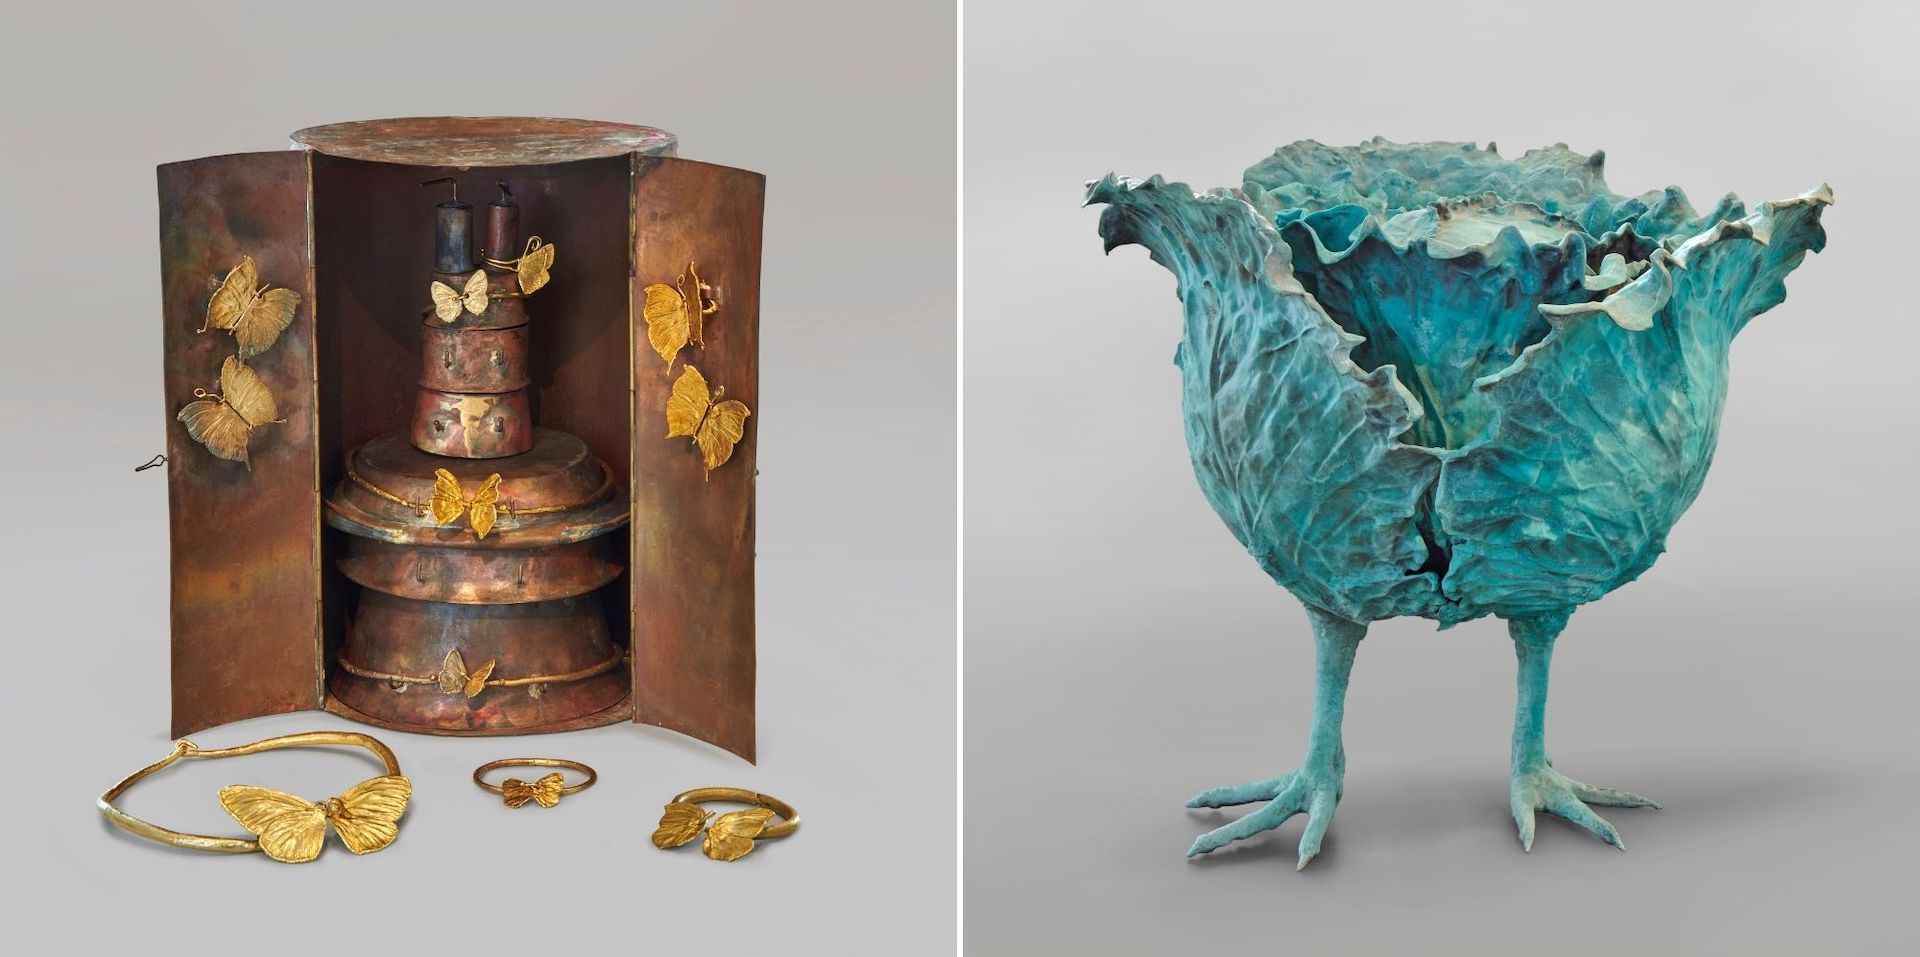 Le Cabinet Papillons, c. 1964, and Très Grand Choupatte, 2008/2012, both by Claude Lalanne. Photo © 2021 Artists Rights Society (ARS), New York / ADAGP, Paris; Clark Art Institute / T Clark